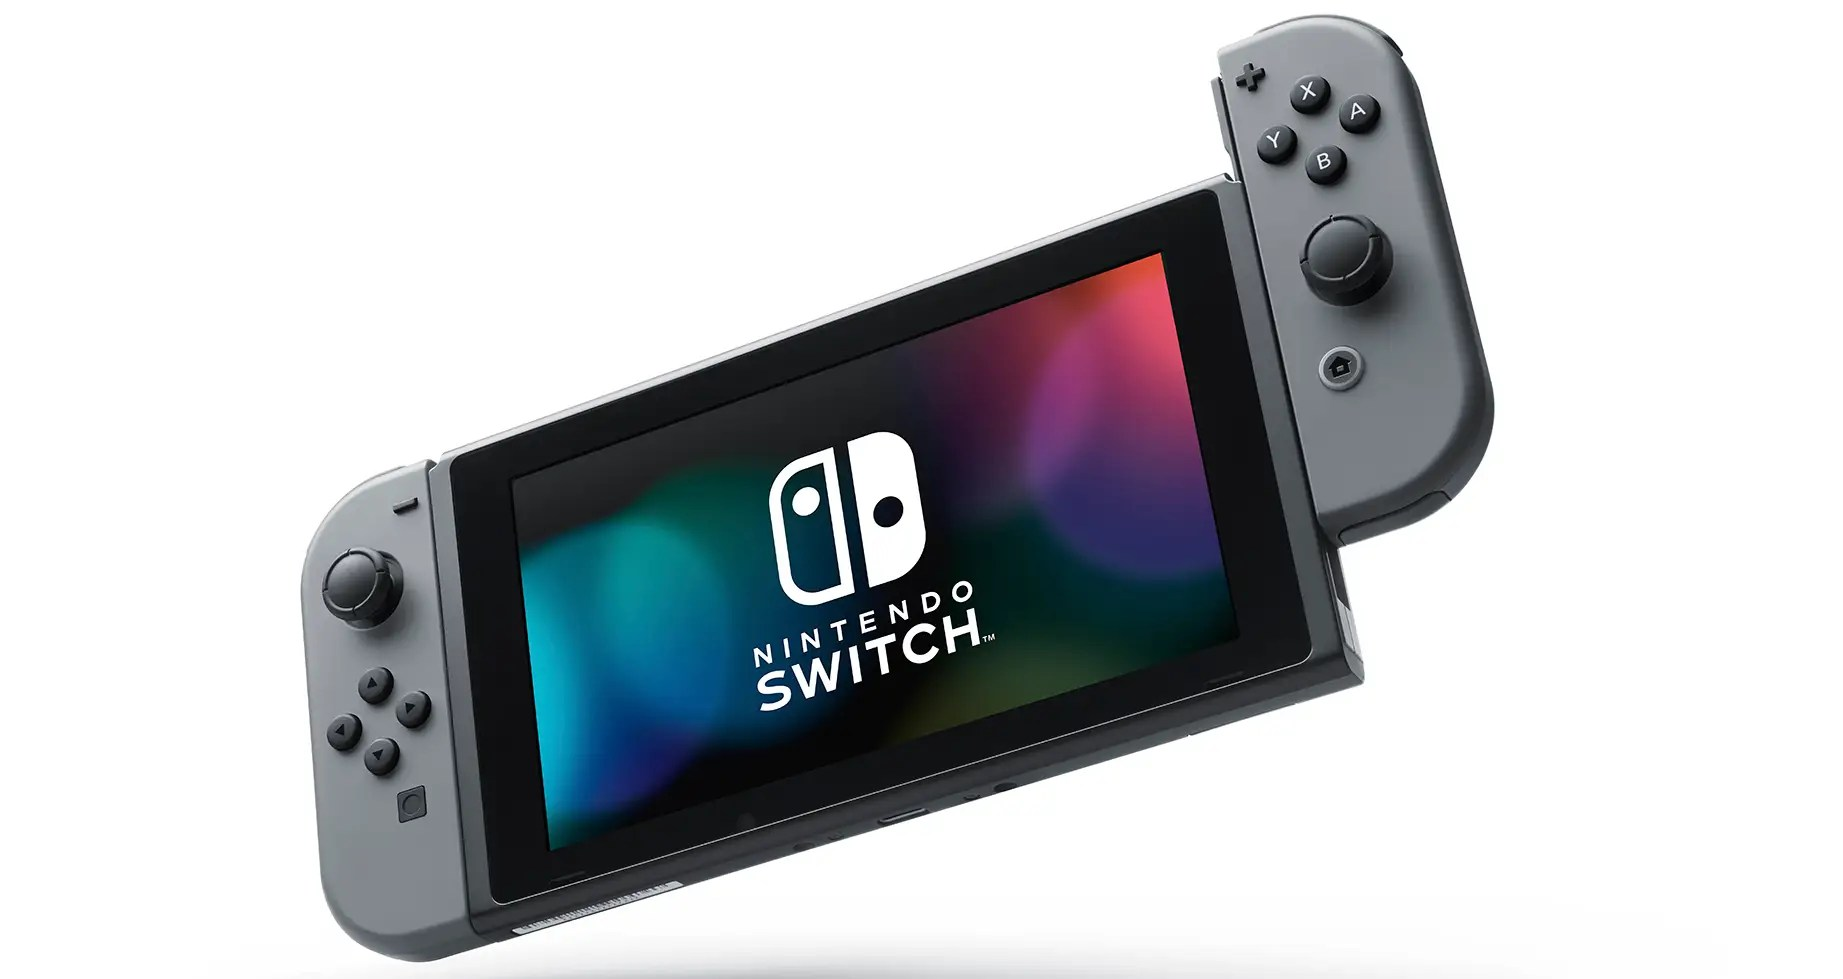 3. Nintendo has a new console to sell that costs much more than $60 — that's a much bigger risk — that it wants you to pay attention to: the Nintendo Switch.